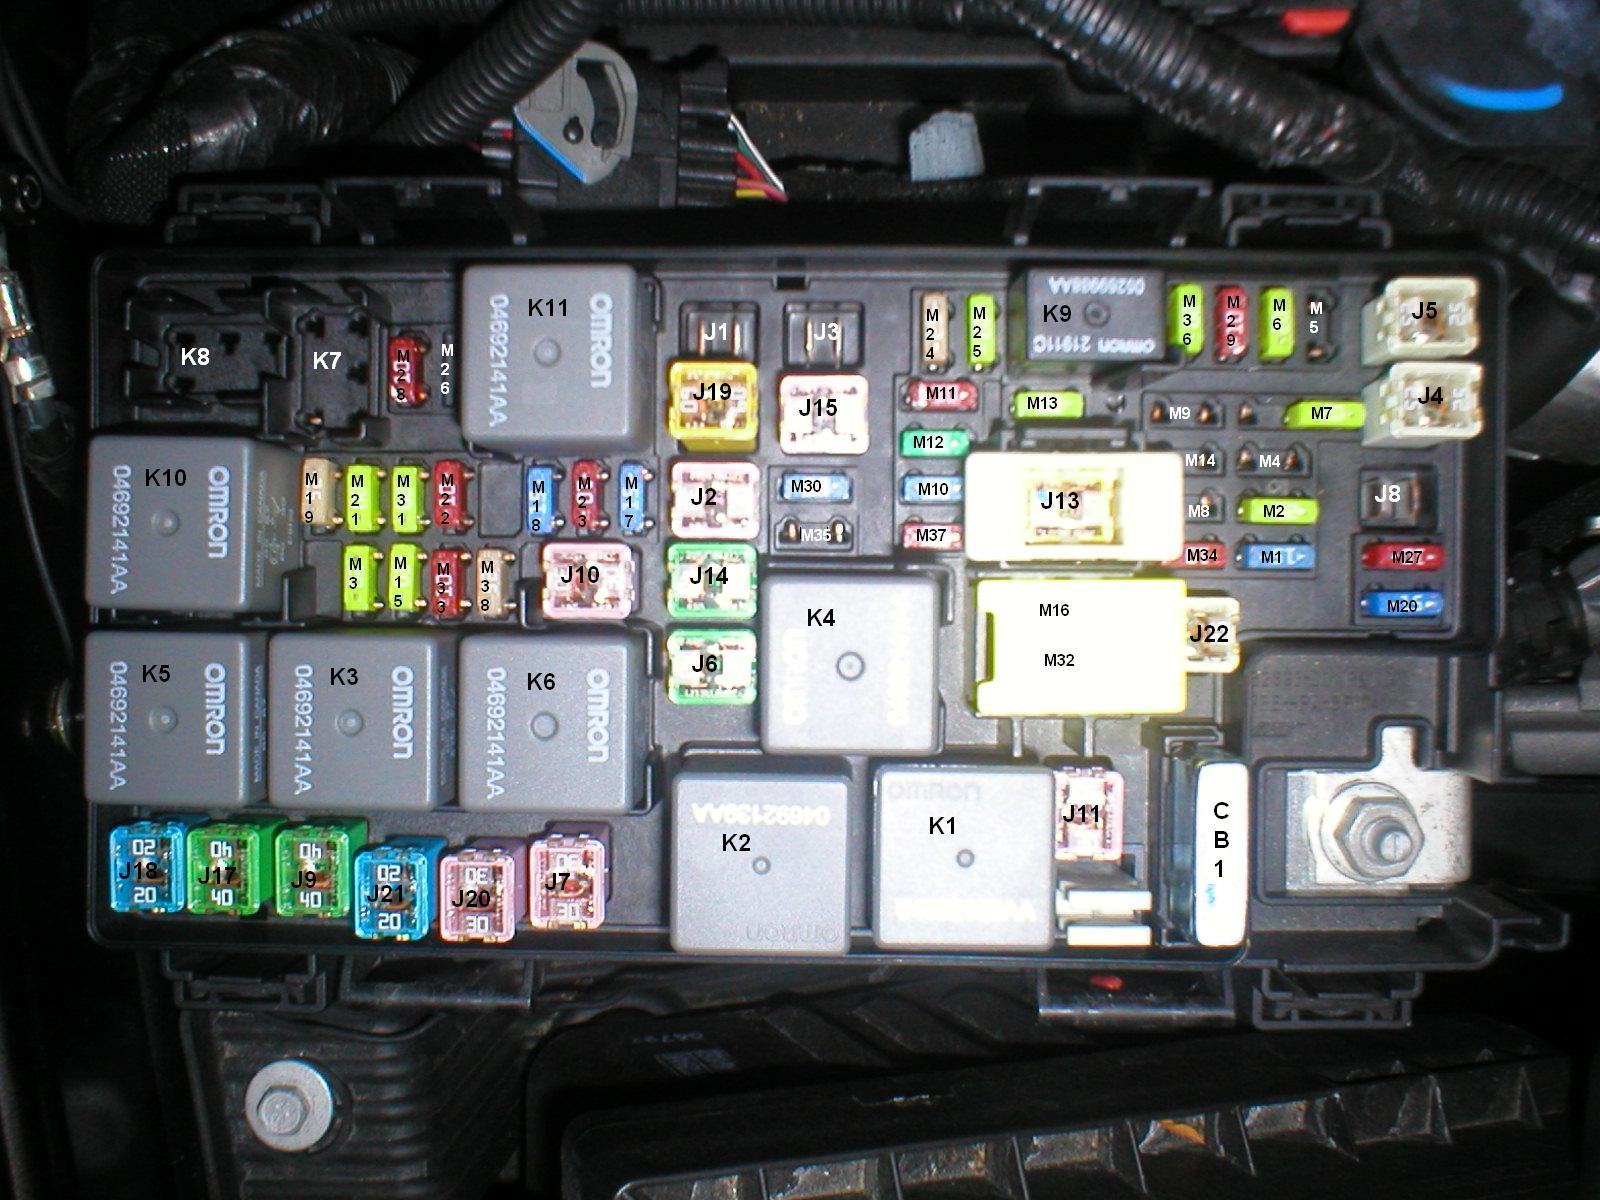 hight resolution of jeep jk fuse box map layout diagram jeepforum com 2015 nissan versa fuse box location 2015